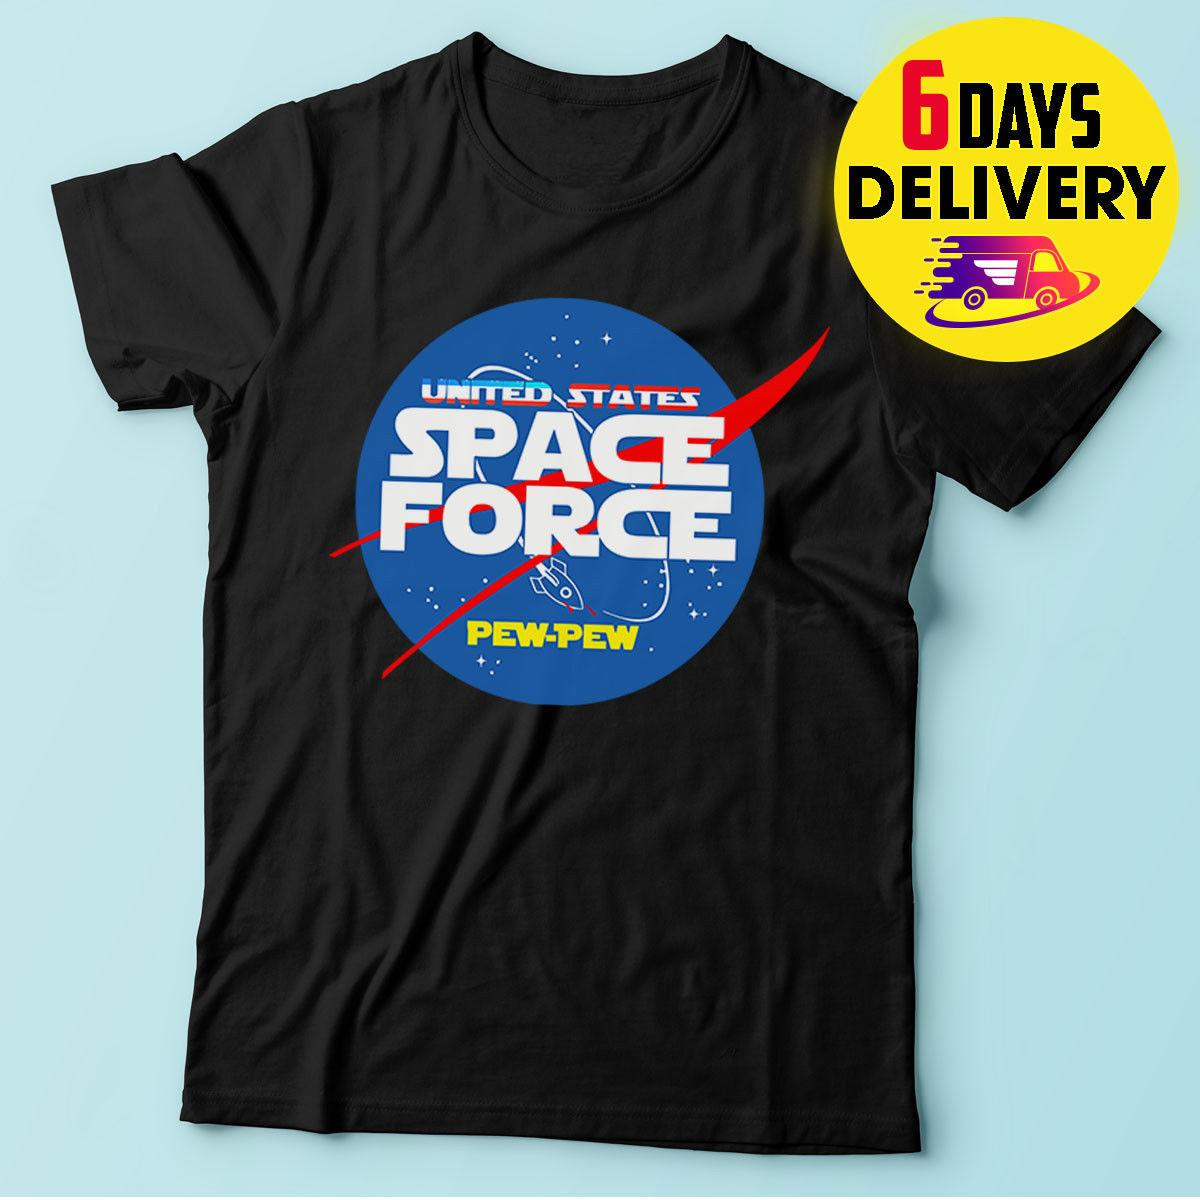 15d2efca Donald Trump Space Force Military T Shirt United States Space Force Pew Pew Tee  Funny Unisex Casual All That Tshirt Cool Tee Designs From Rocktothetop, ...